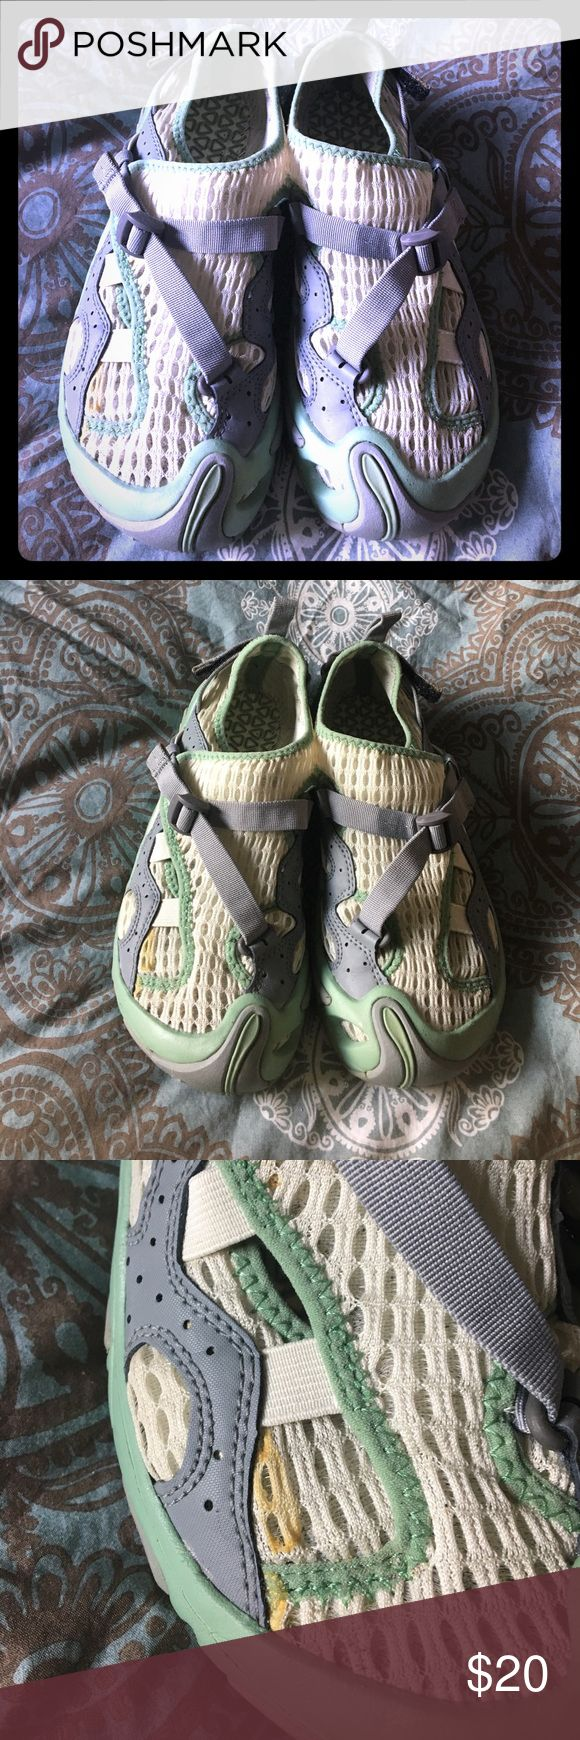 TEVA Water Shoes Green and white mesh water shoes by TEVA. Two adjustable straps for a perfect fit. Little discoloration on right shoe, looks like glue, as seen in picture. Otherwise, great condition, hardly worn. Teva Shoes Athletic Shoes